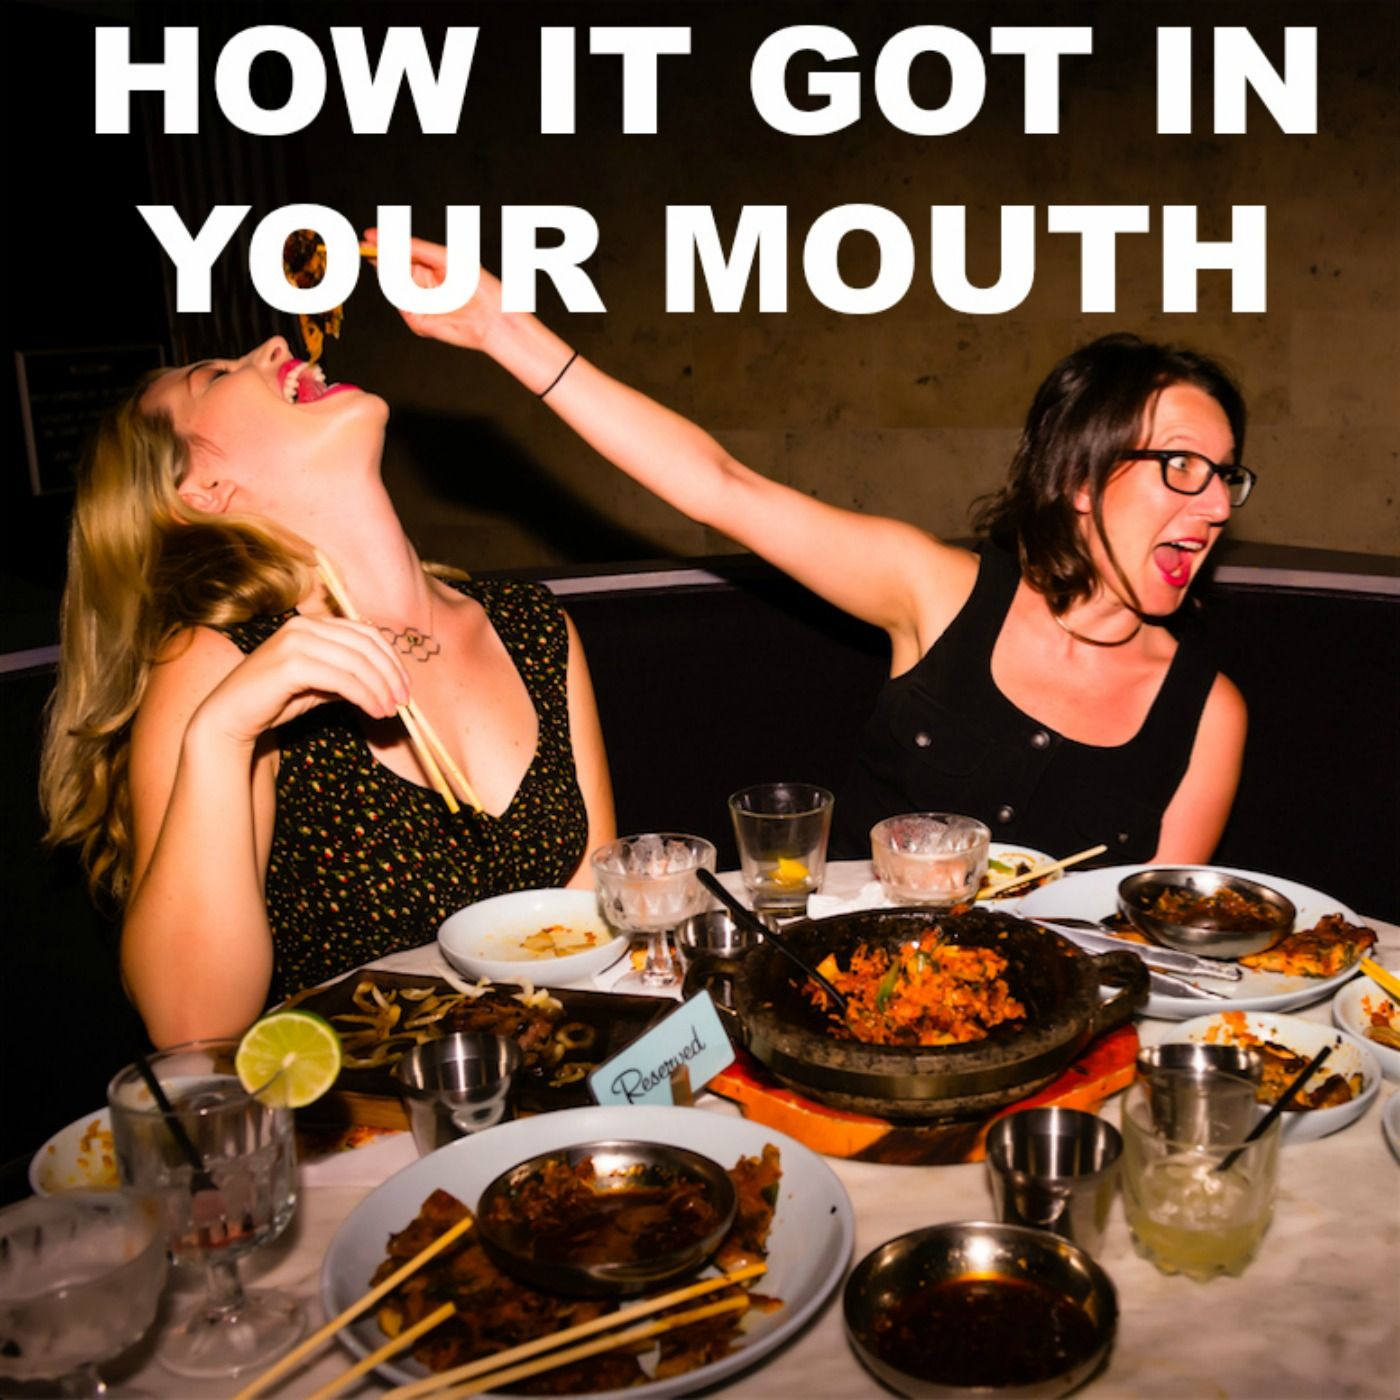 How It Got In Your Mouth